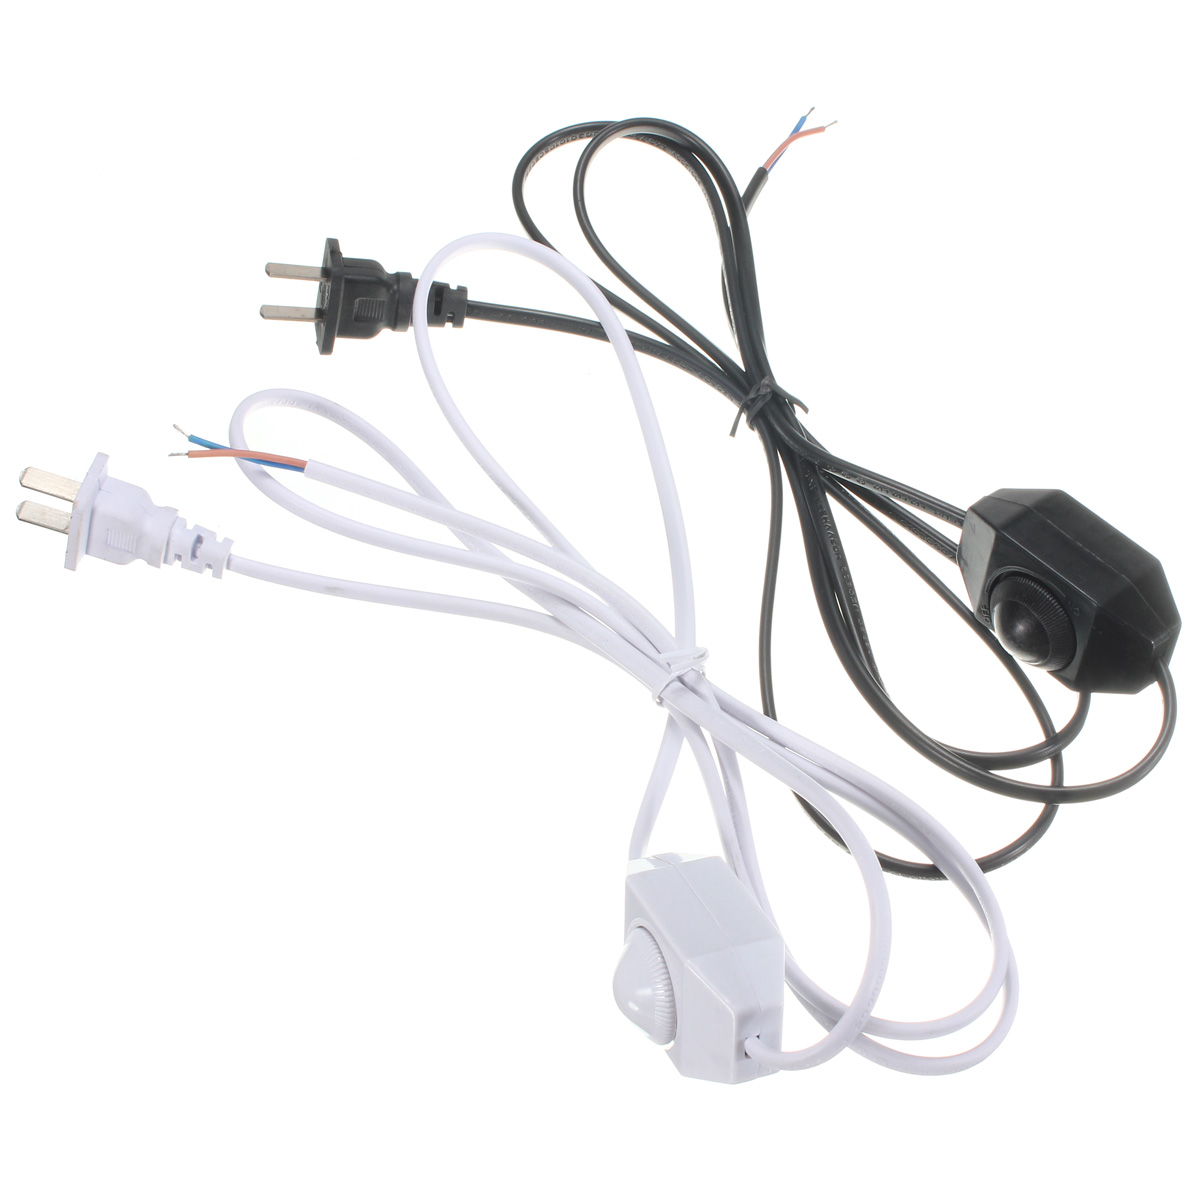 White Black Awg Switch Dimming Cable Light Modulator Lamp